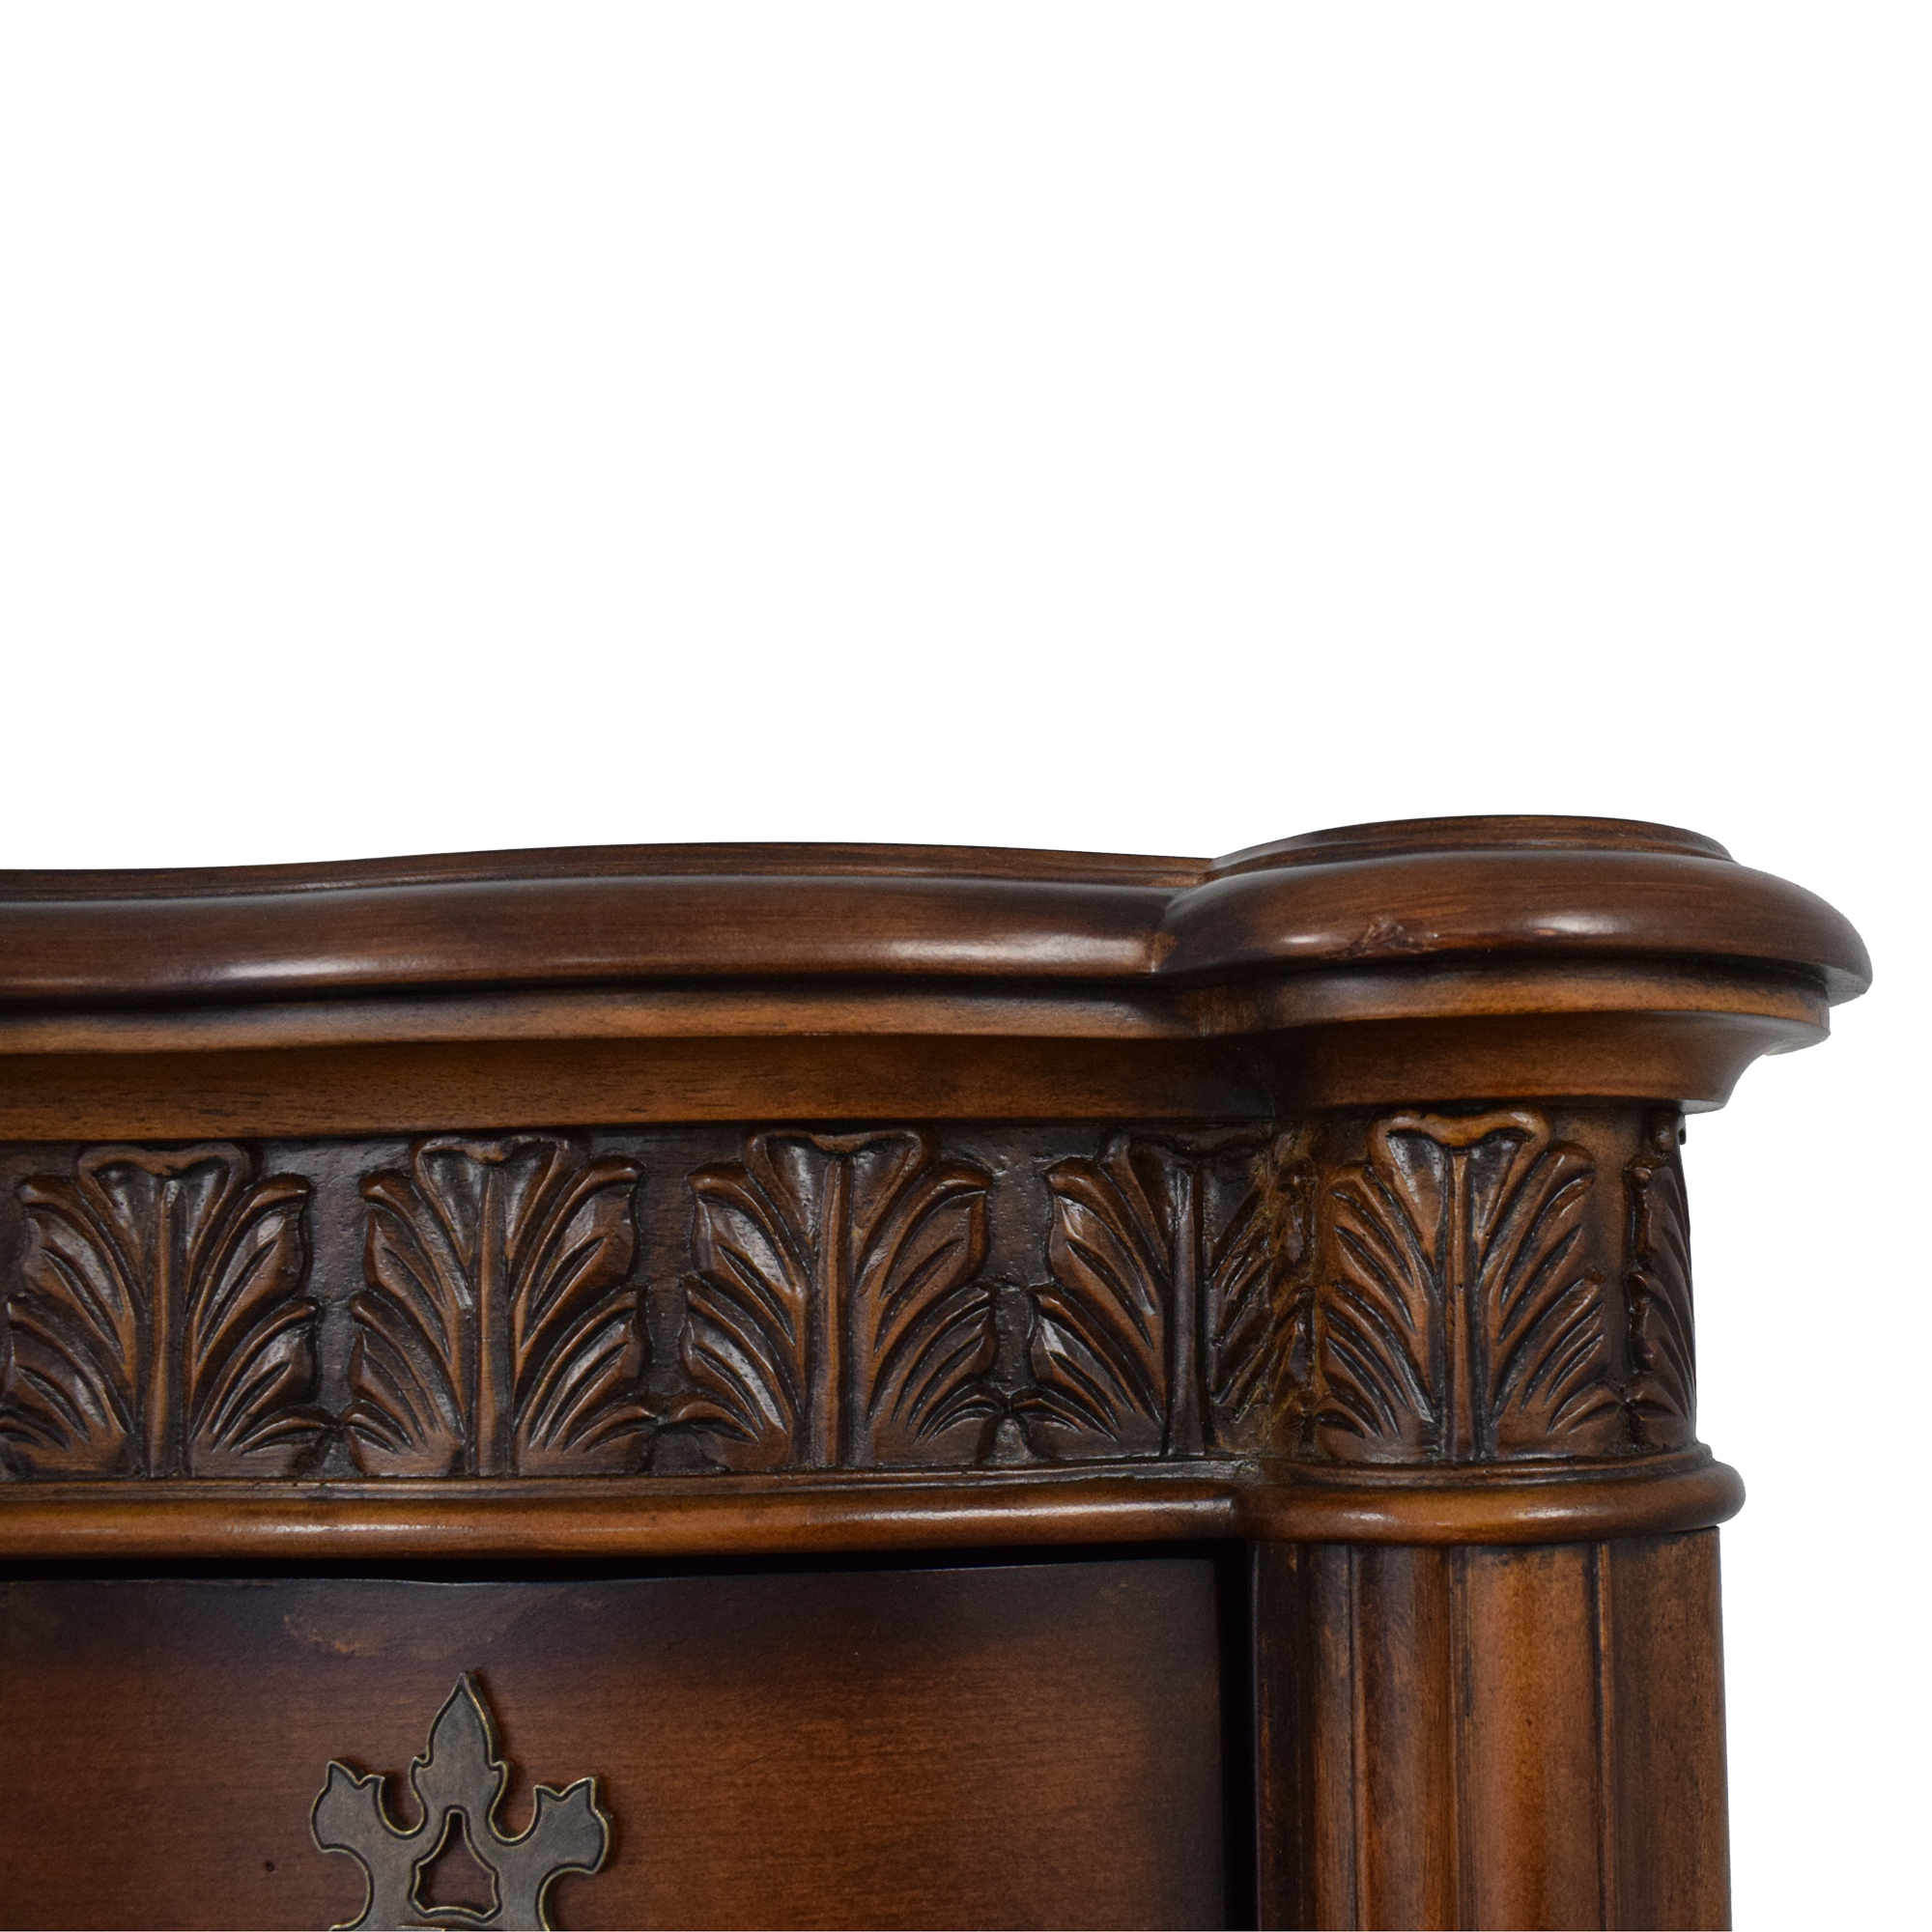 Pulaski Furniture Pulaski Six Drawer Grand Ornate Dresser price